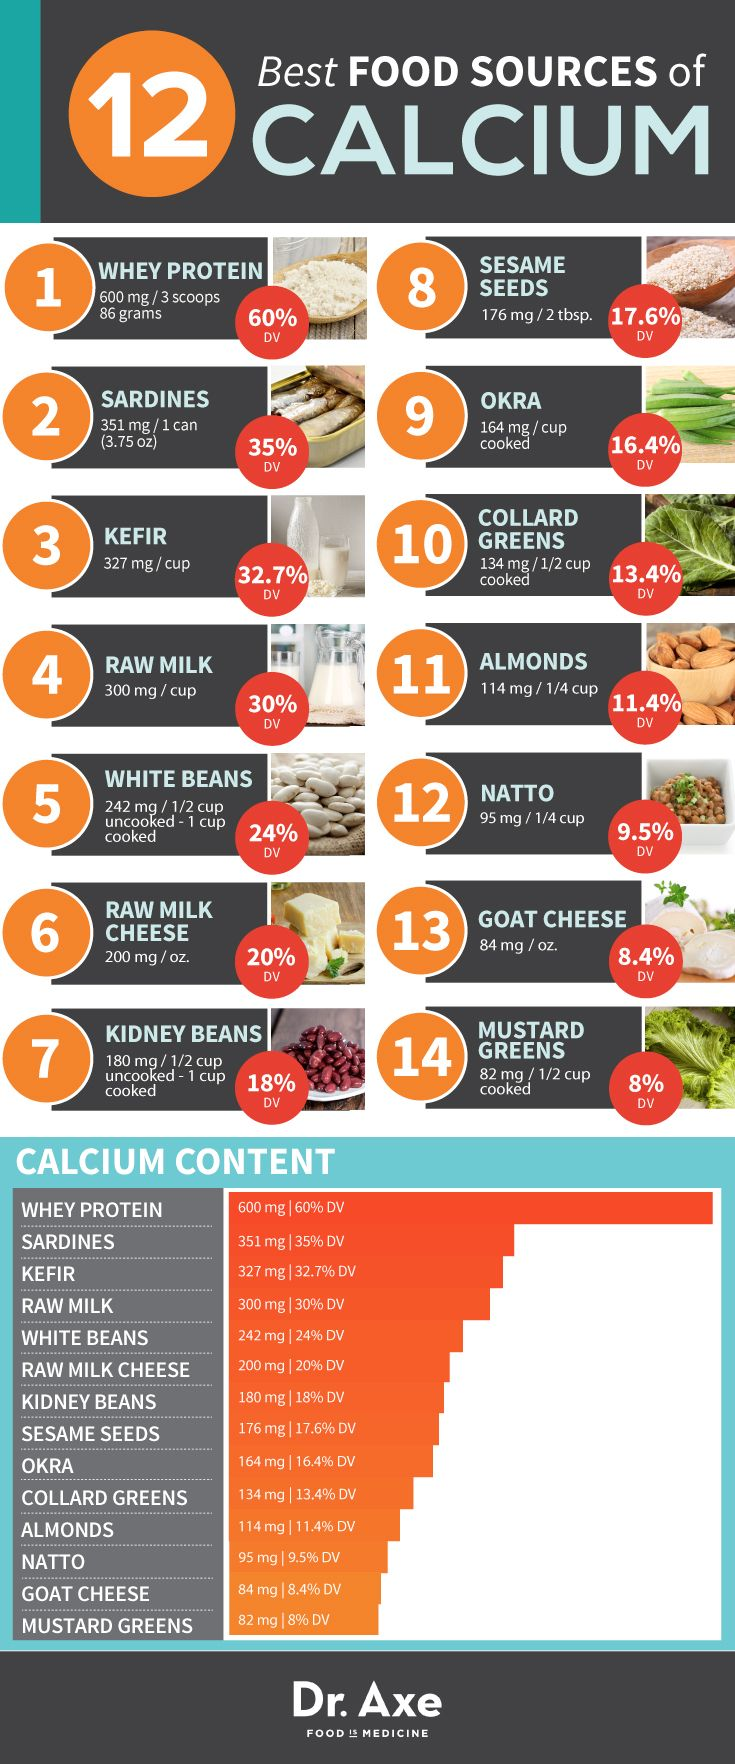 Calcium Foods | When people think of calcium, bone health is usually the first thing that comes to mind, but calcium's benefits go far beyond helping to build and maintain a strong skeletal structure. Calcium is also needed to regulate heart rhythms, aid in muscle function, regulate blood pressure and cholesterol levels, and is involved in numerous nerve signaling functions, and much more.